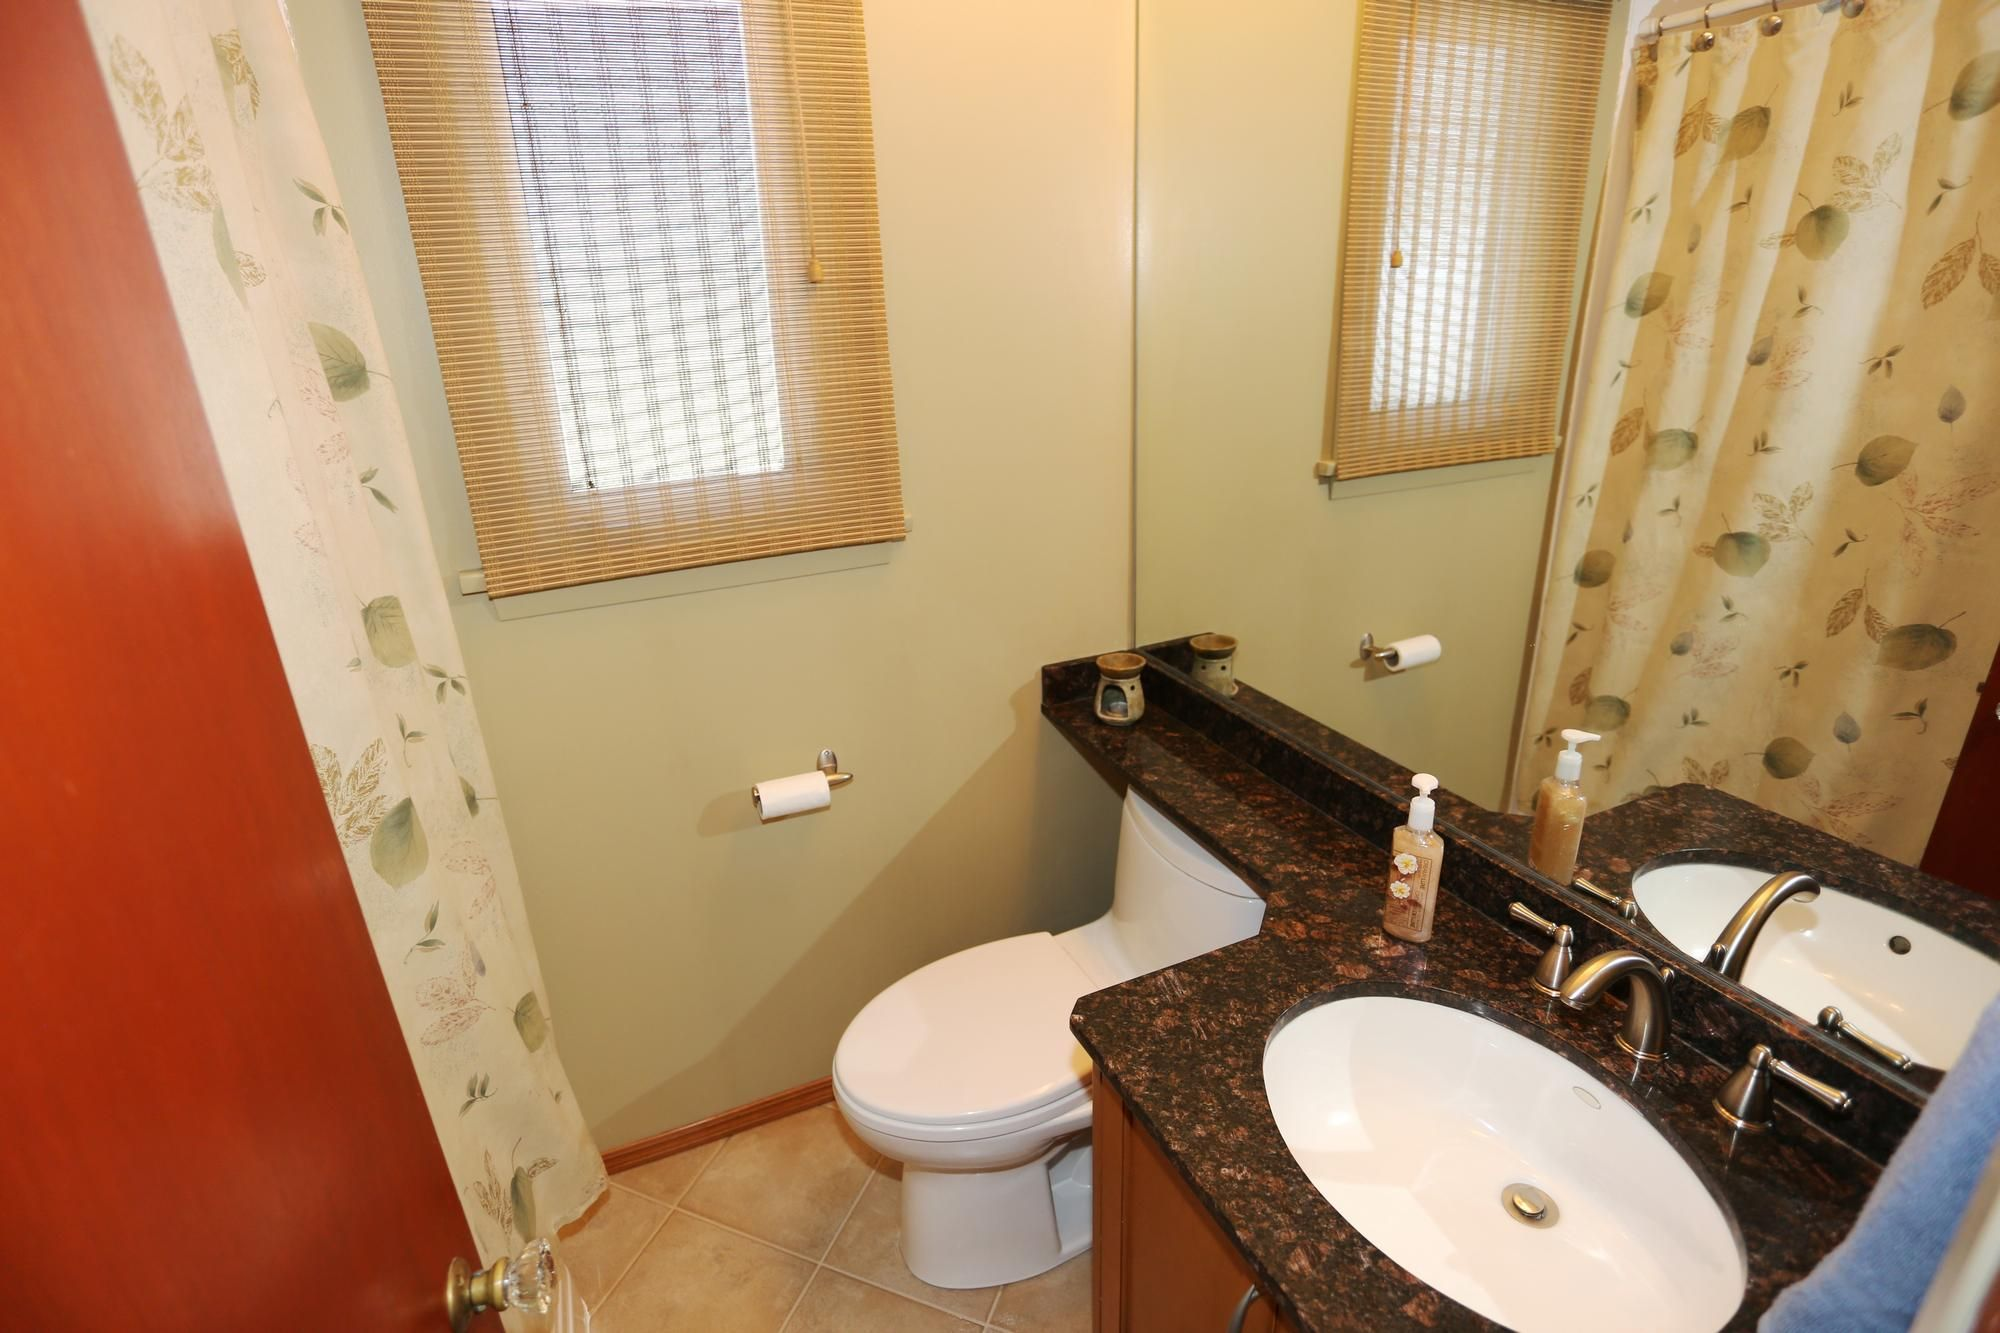 Photo 14: Photos: 349 Guildford Street in Winnipeg: St James Single Family Detached for sale (5E)  : MLS®# 1807654